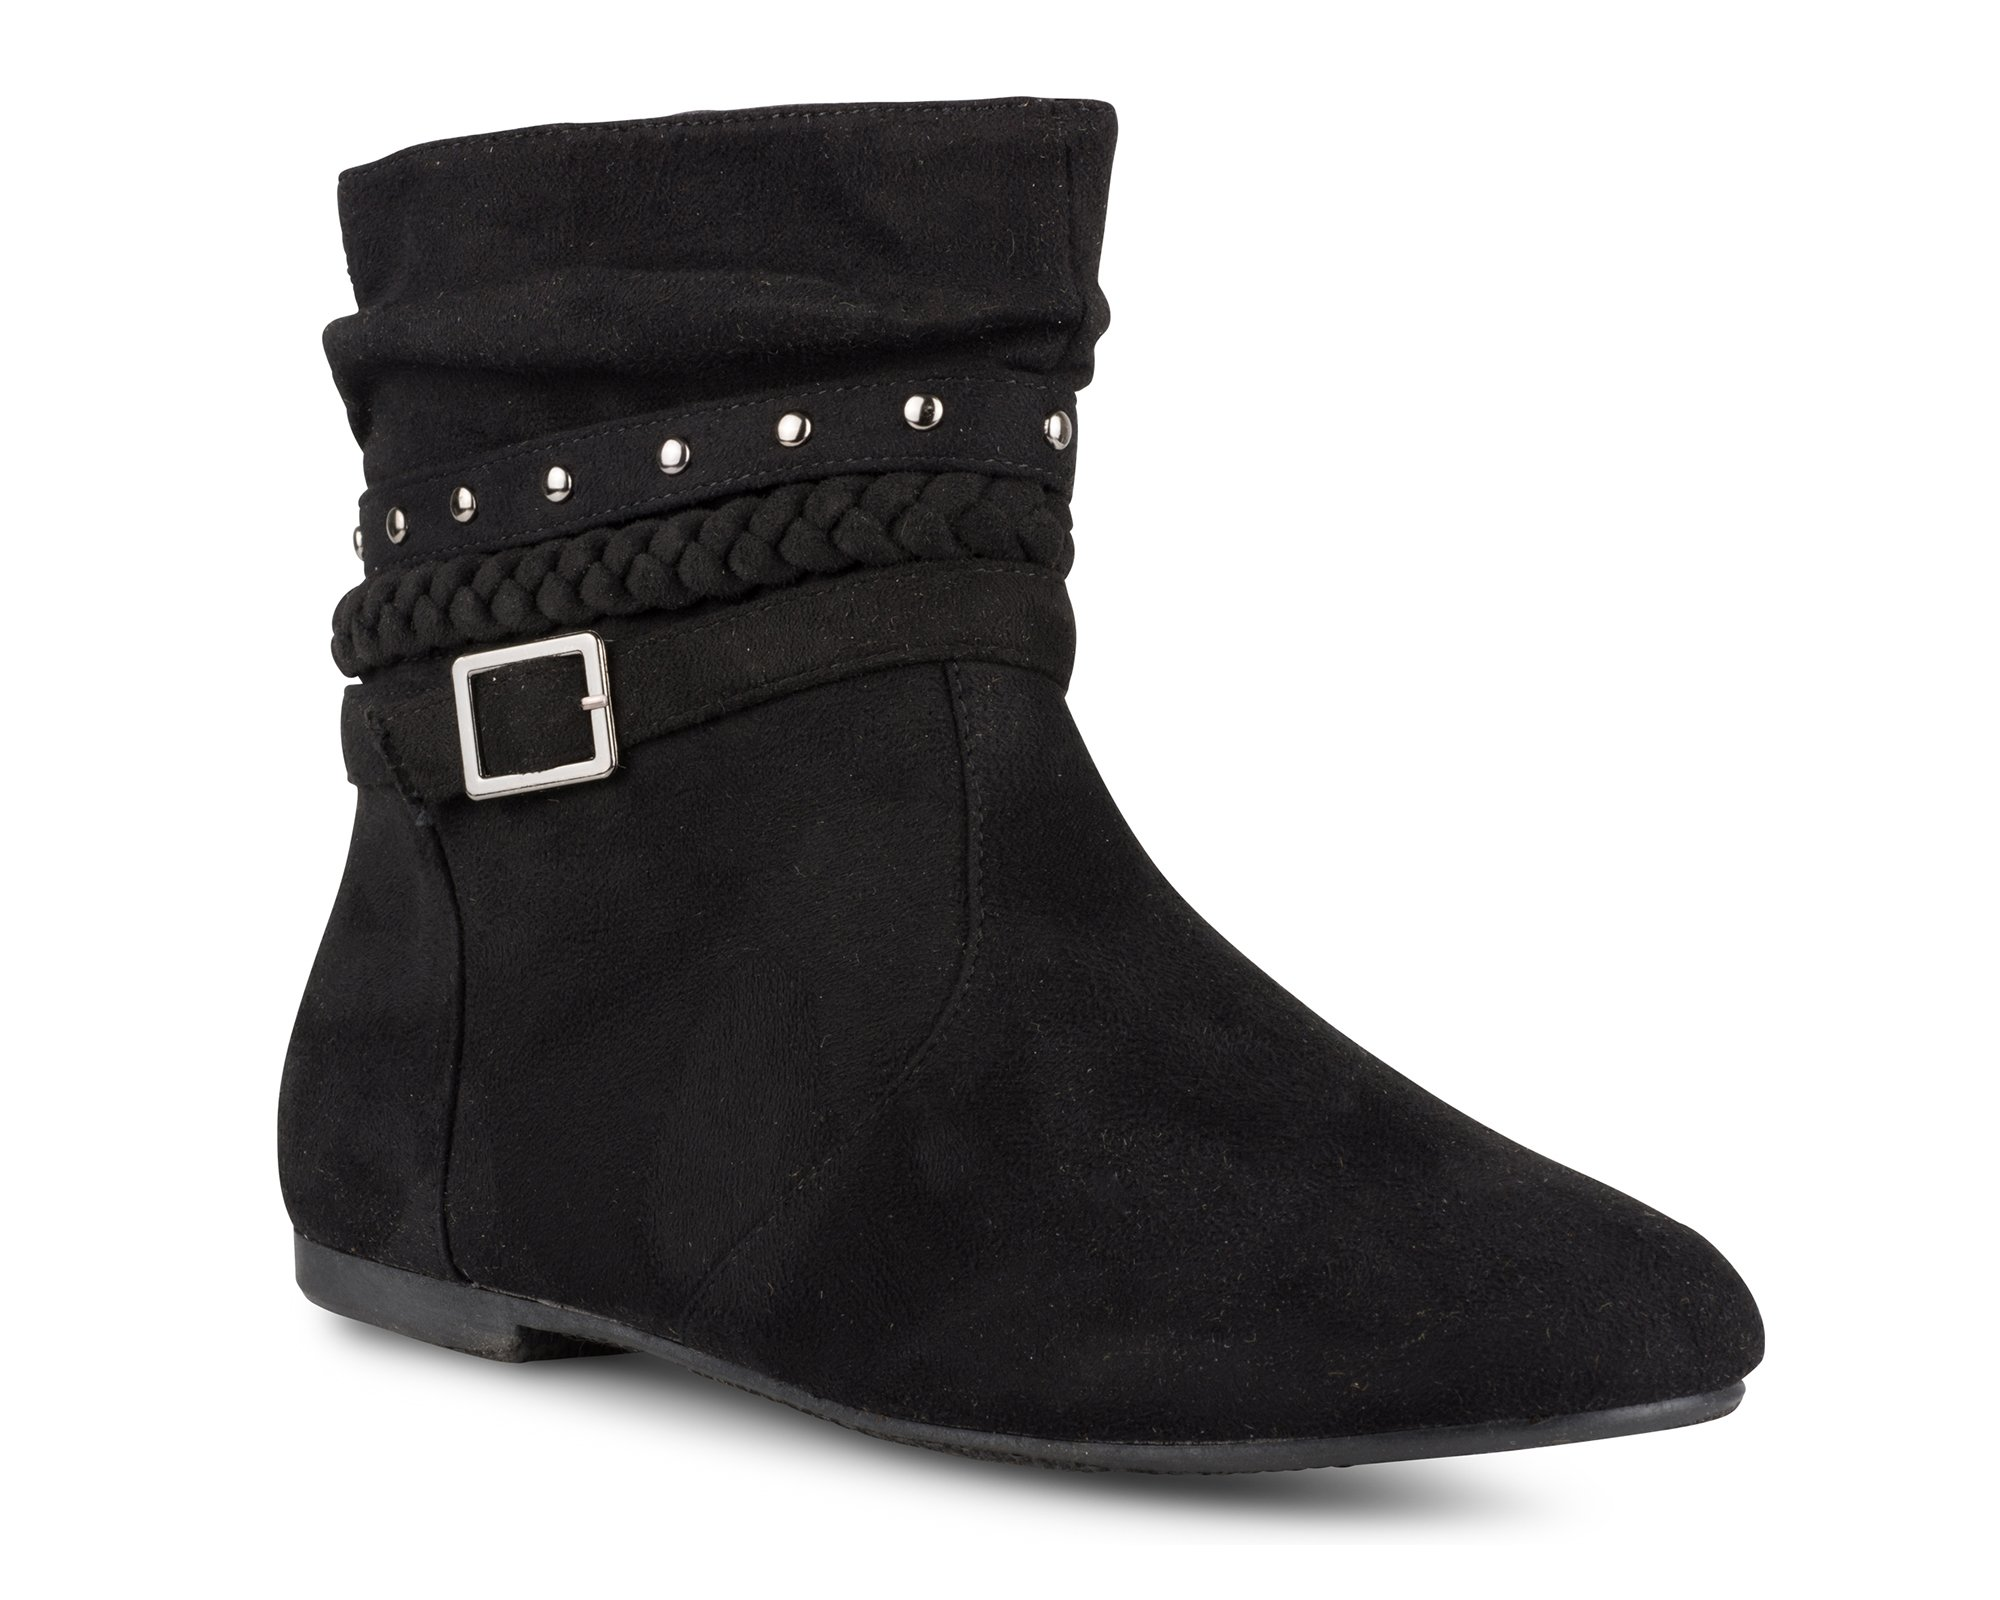 Twisted Women's Shelly Faux Leather Ankle-High Slouchy Boot with Multi Buckle Straps - SHELLYDEV Black Suede, Size 9